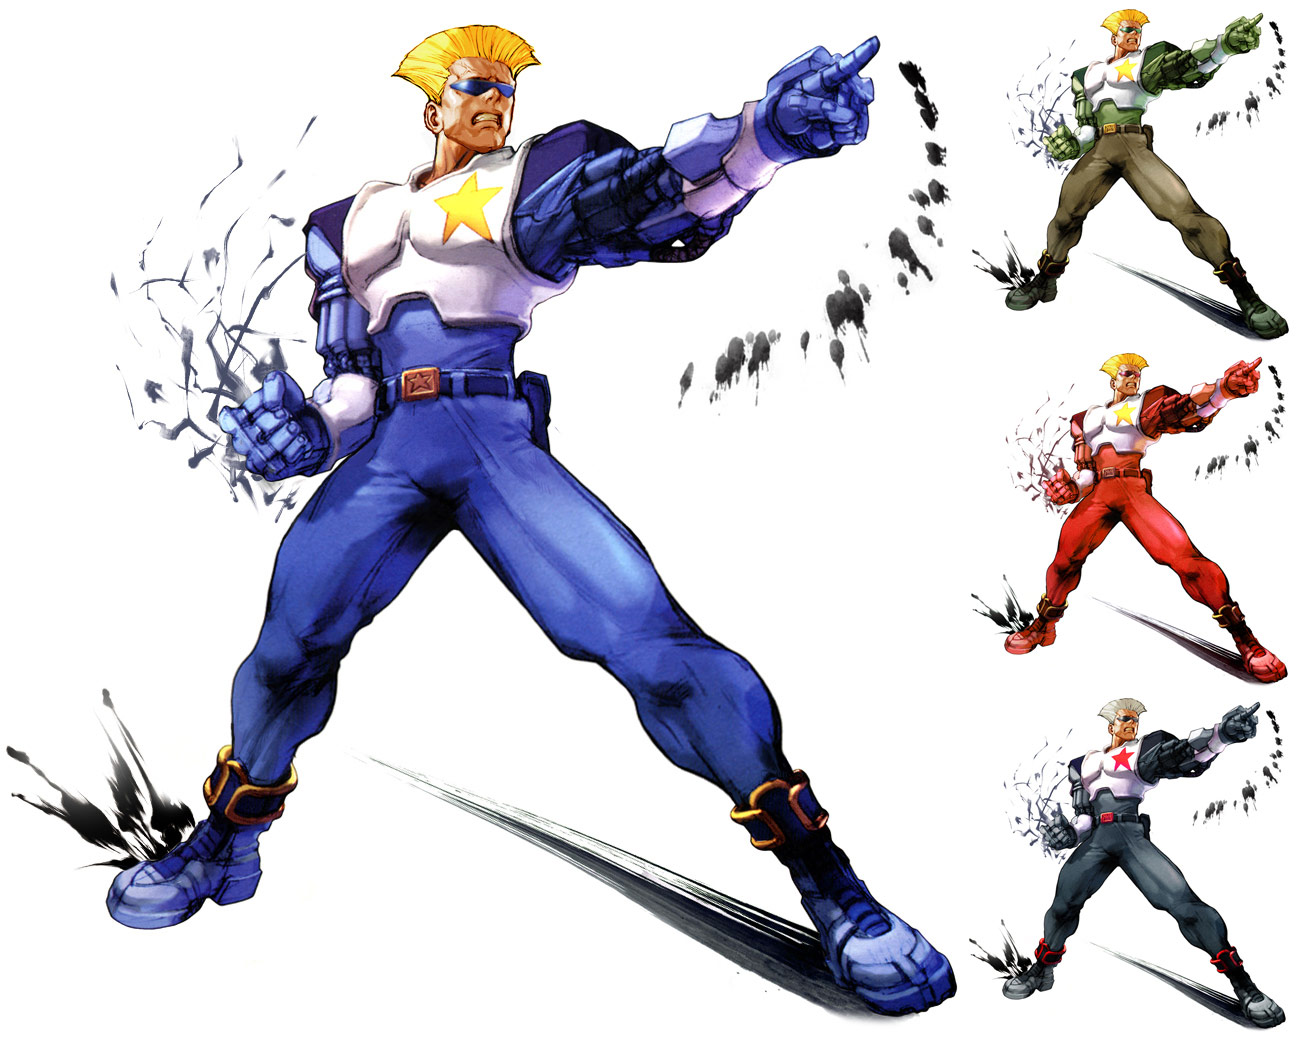 Guile remixed Street Fighter 4 artwork by KAiWAi